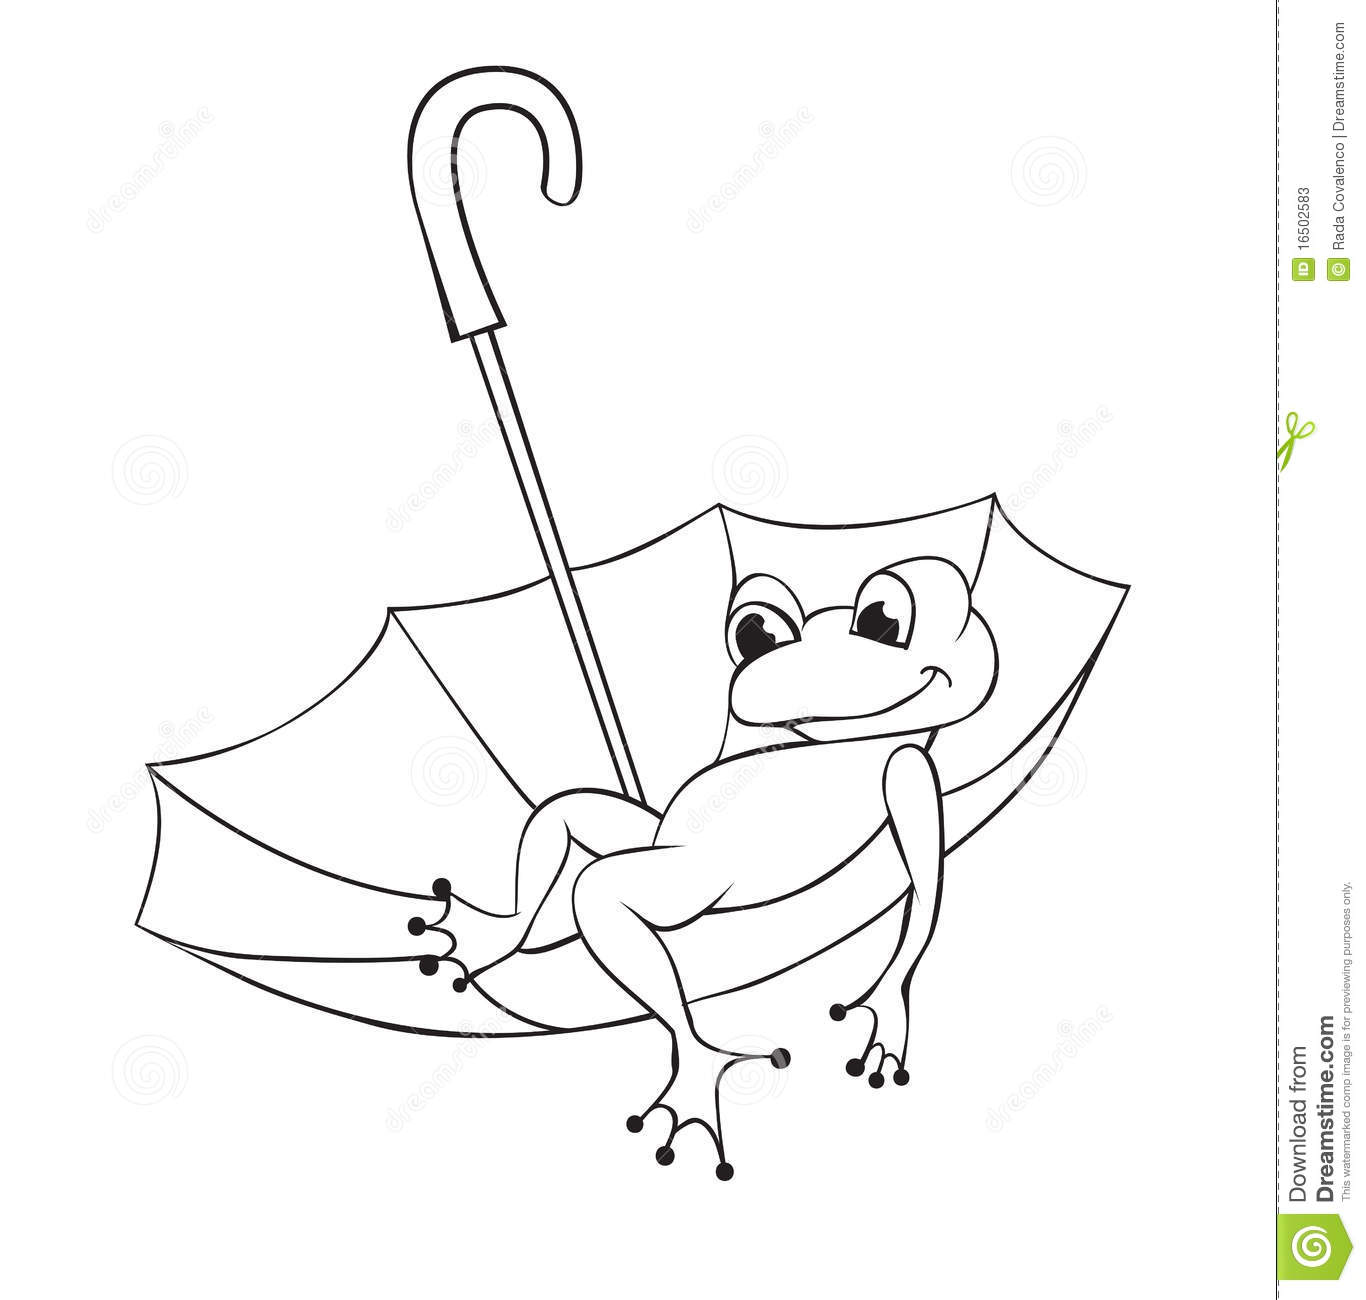 Frog And Umbrella Stock Vector Illustration Of Contour